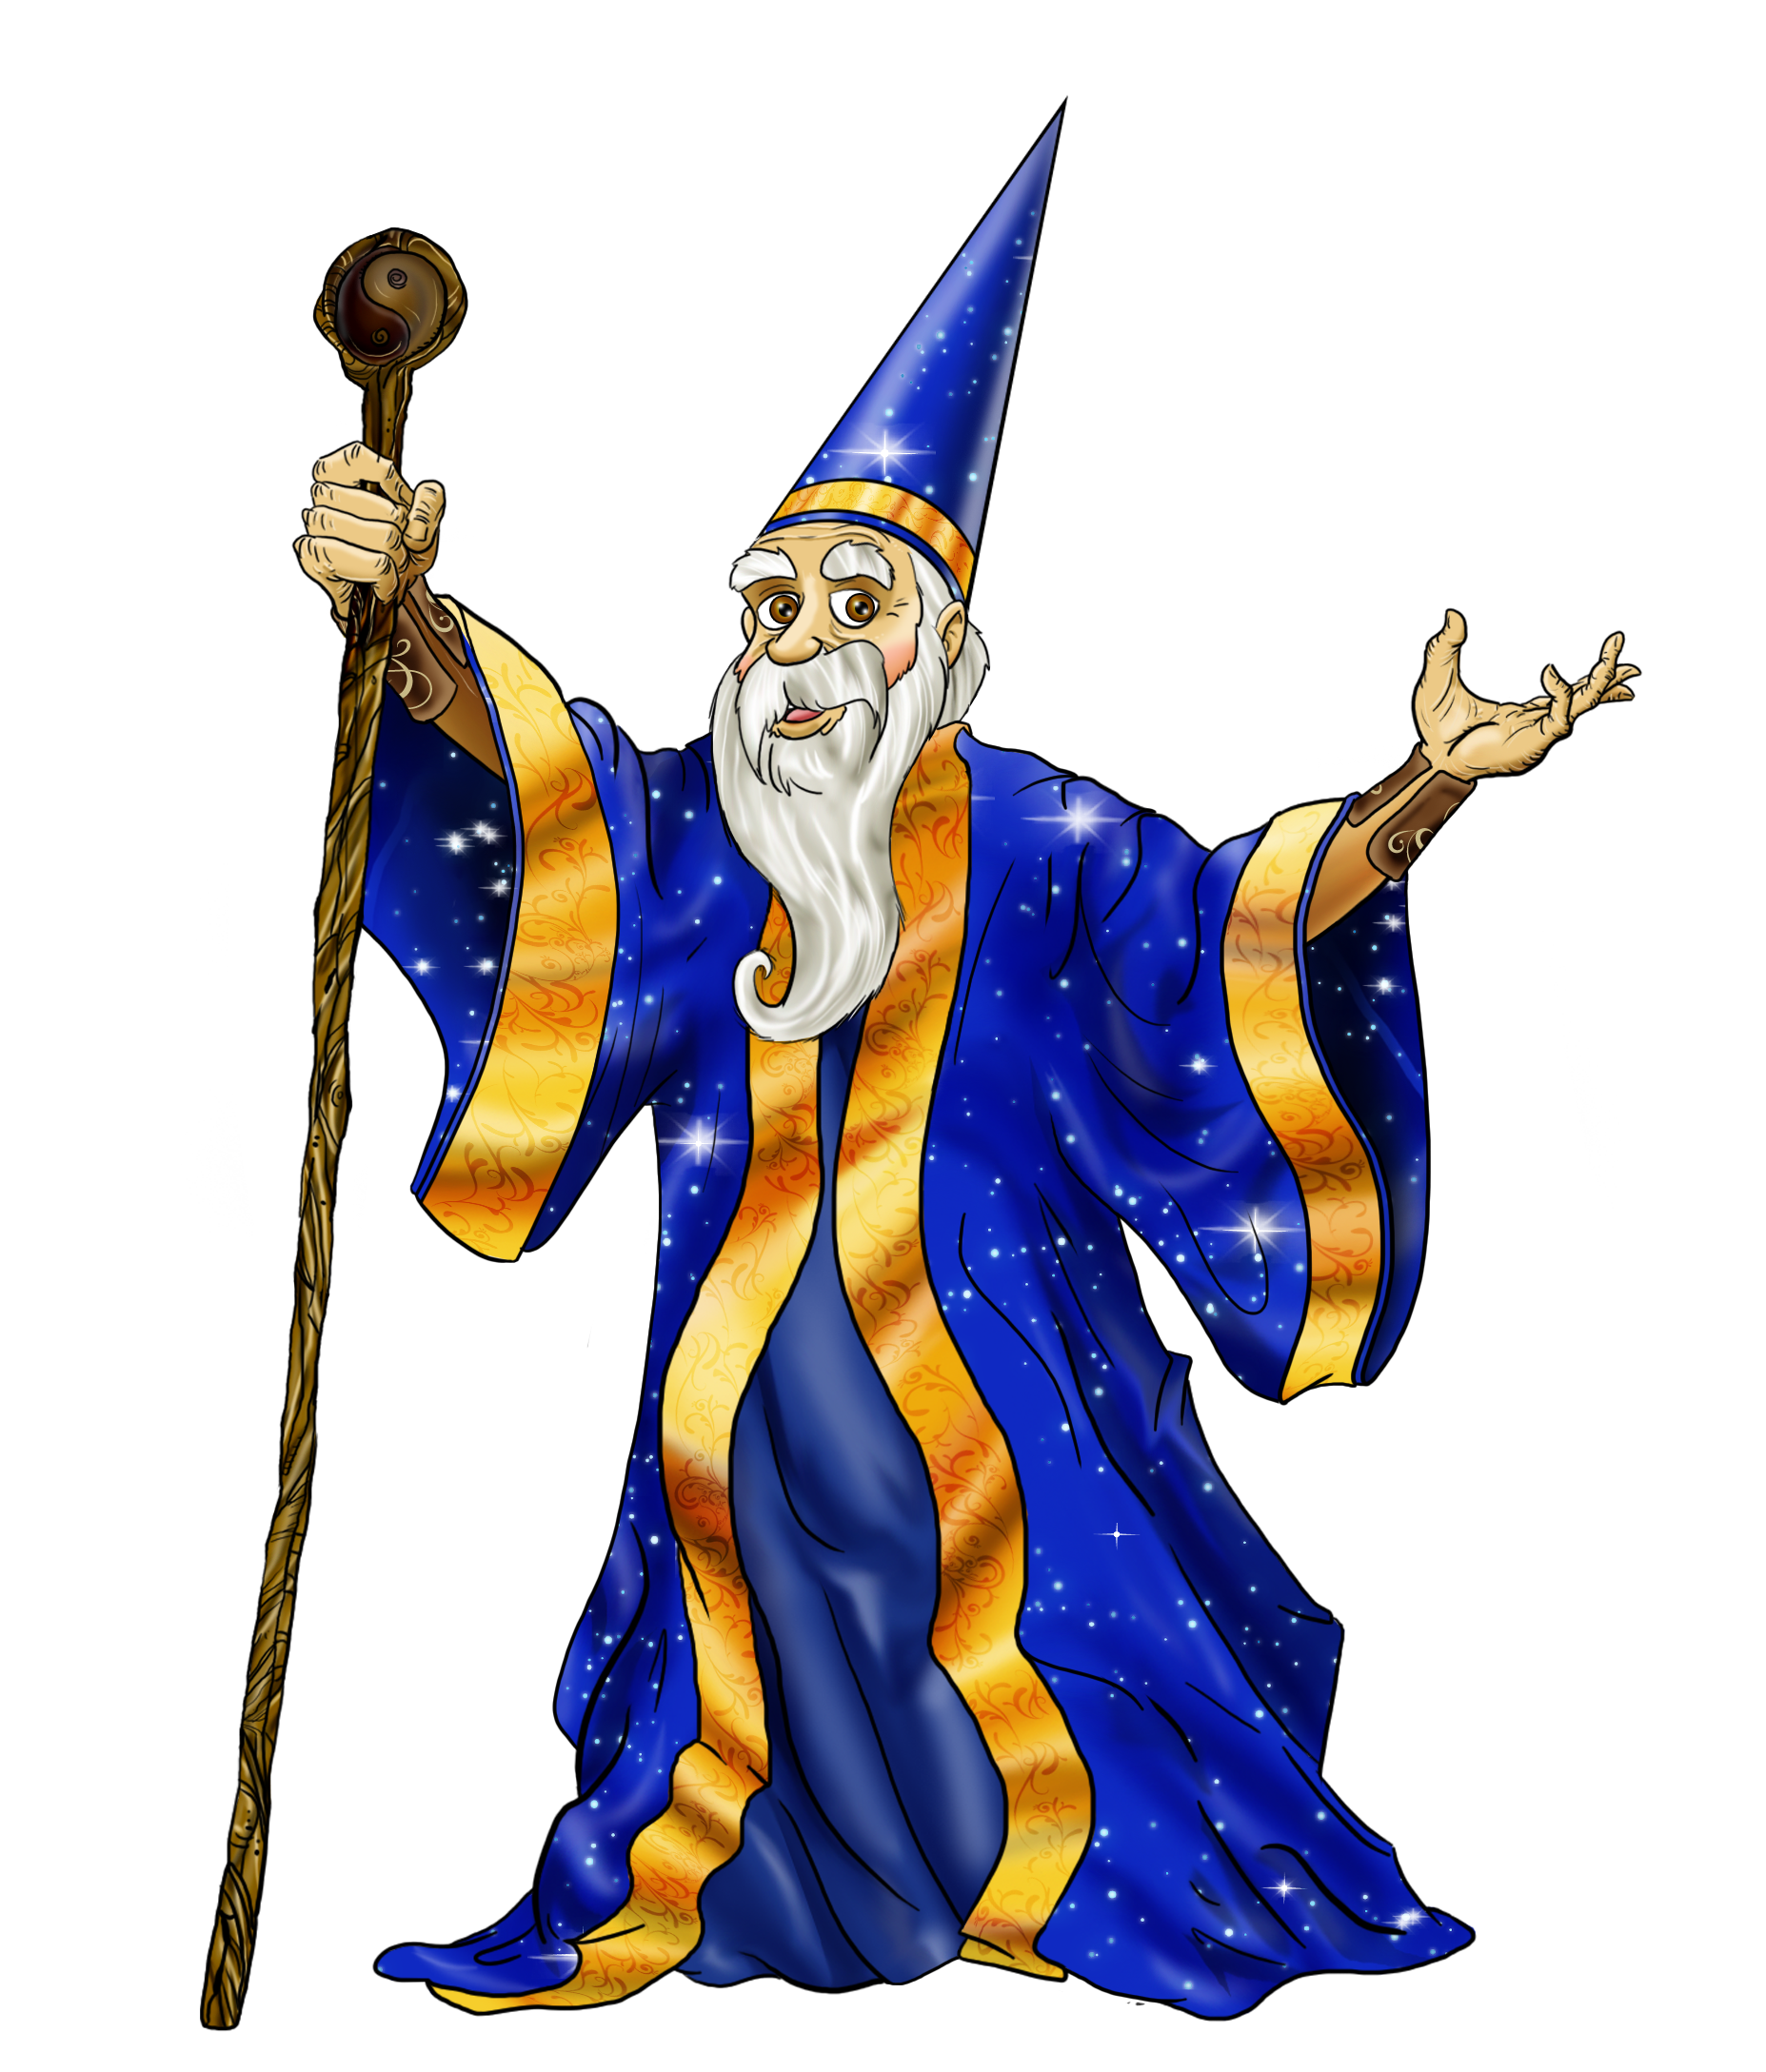 graphic free Fantasy clipart wizard. Png transparent free images.